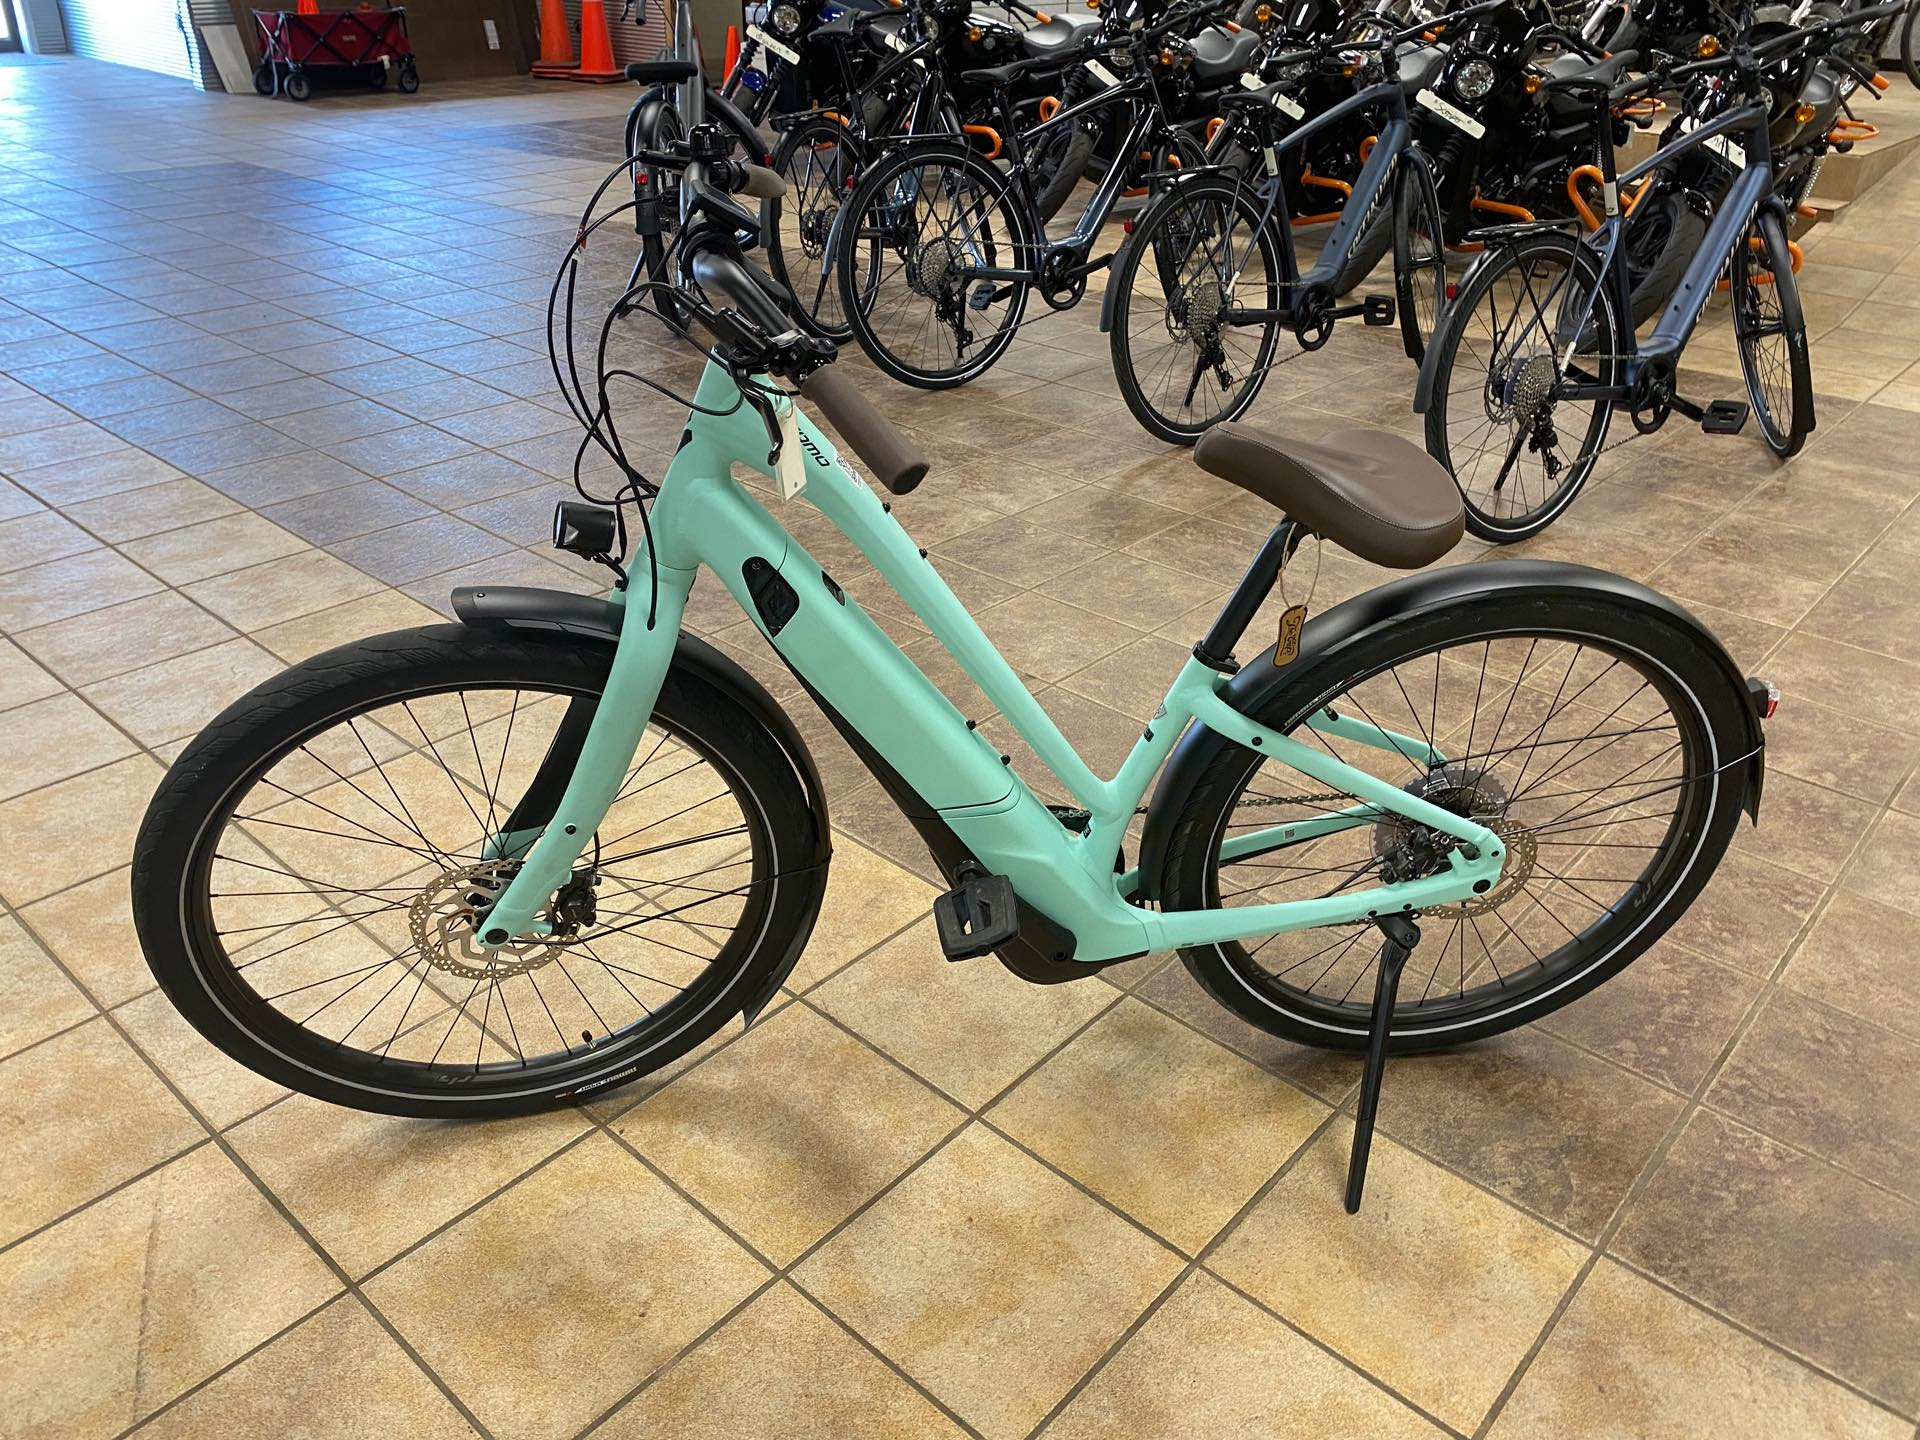 2021 Specialized Turbo E Bikes Como 30 Low-Entry 650b at Gold Star Outdoors